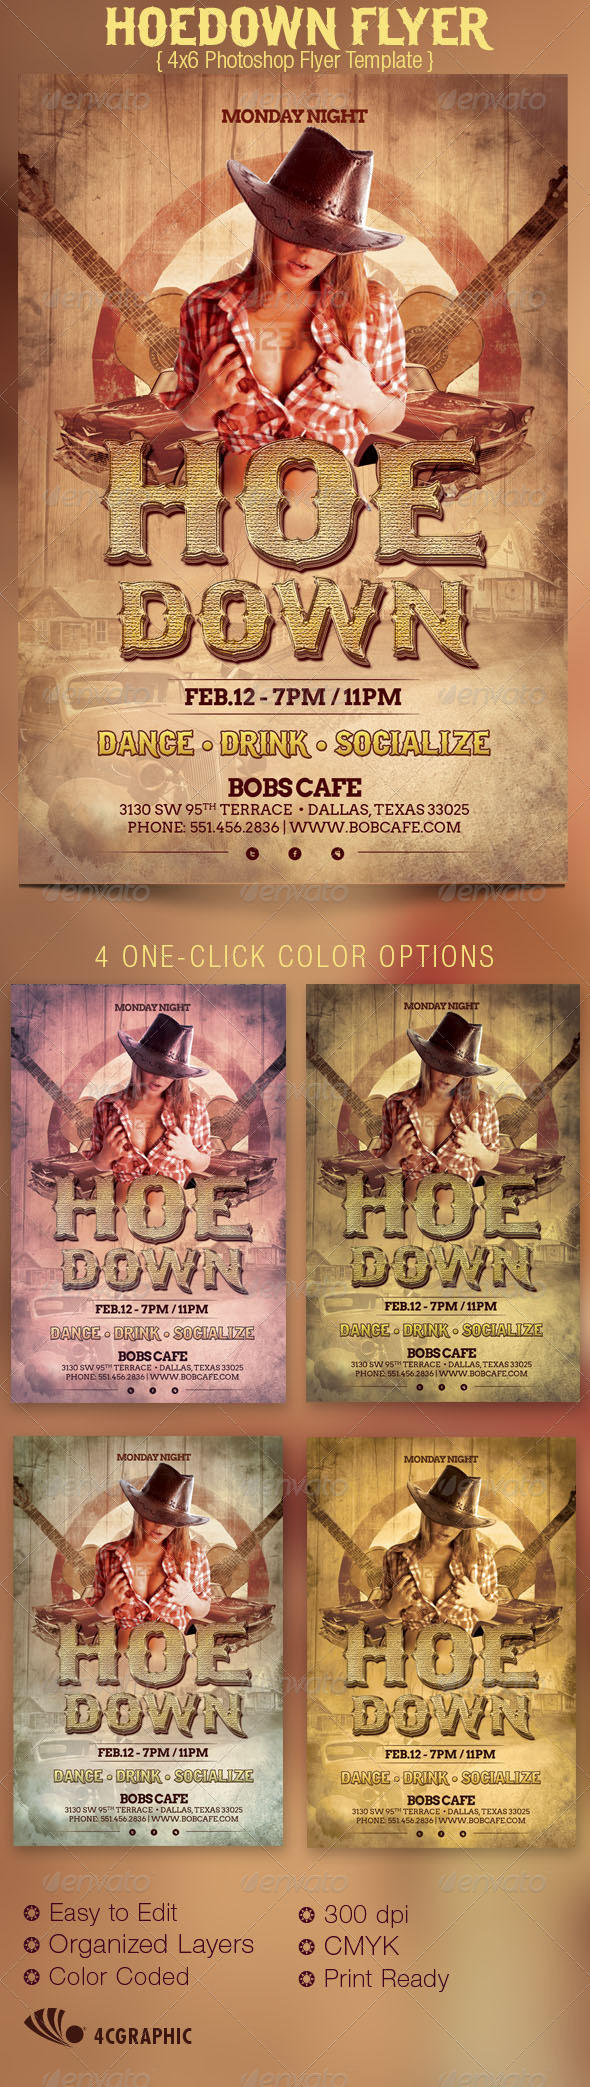 Hoedown Country Flyer Template - Events Flyers